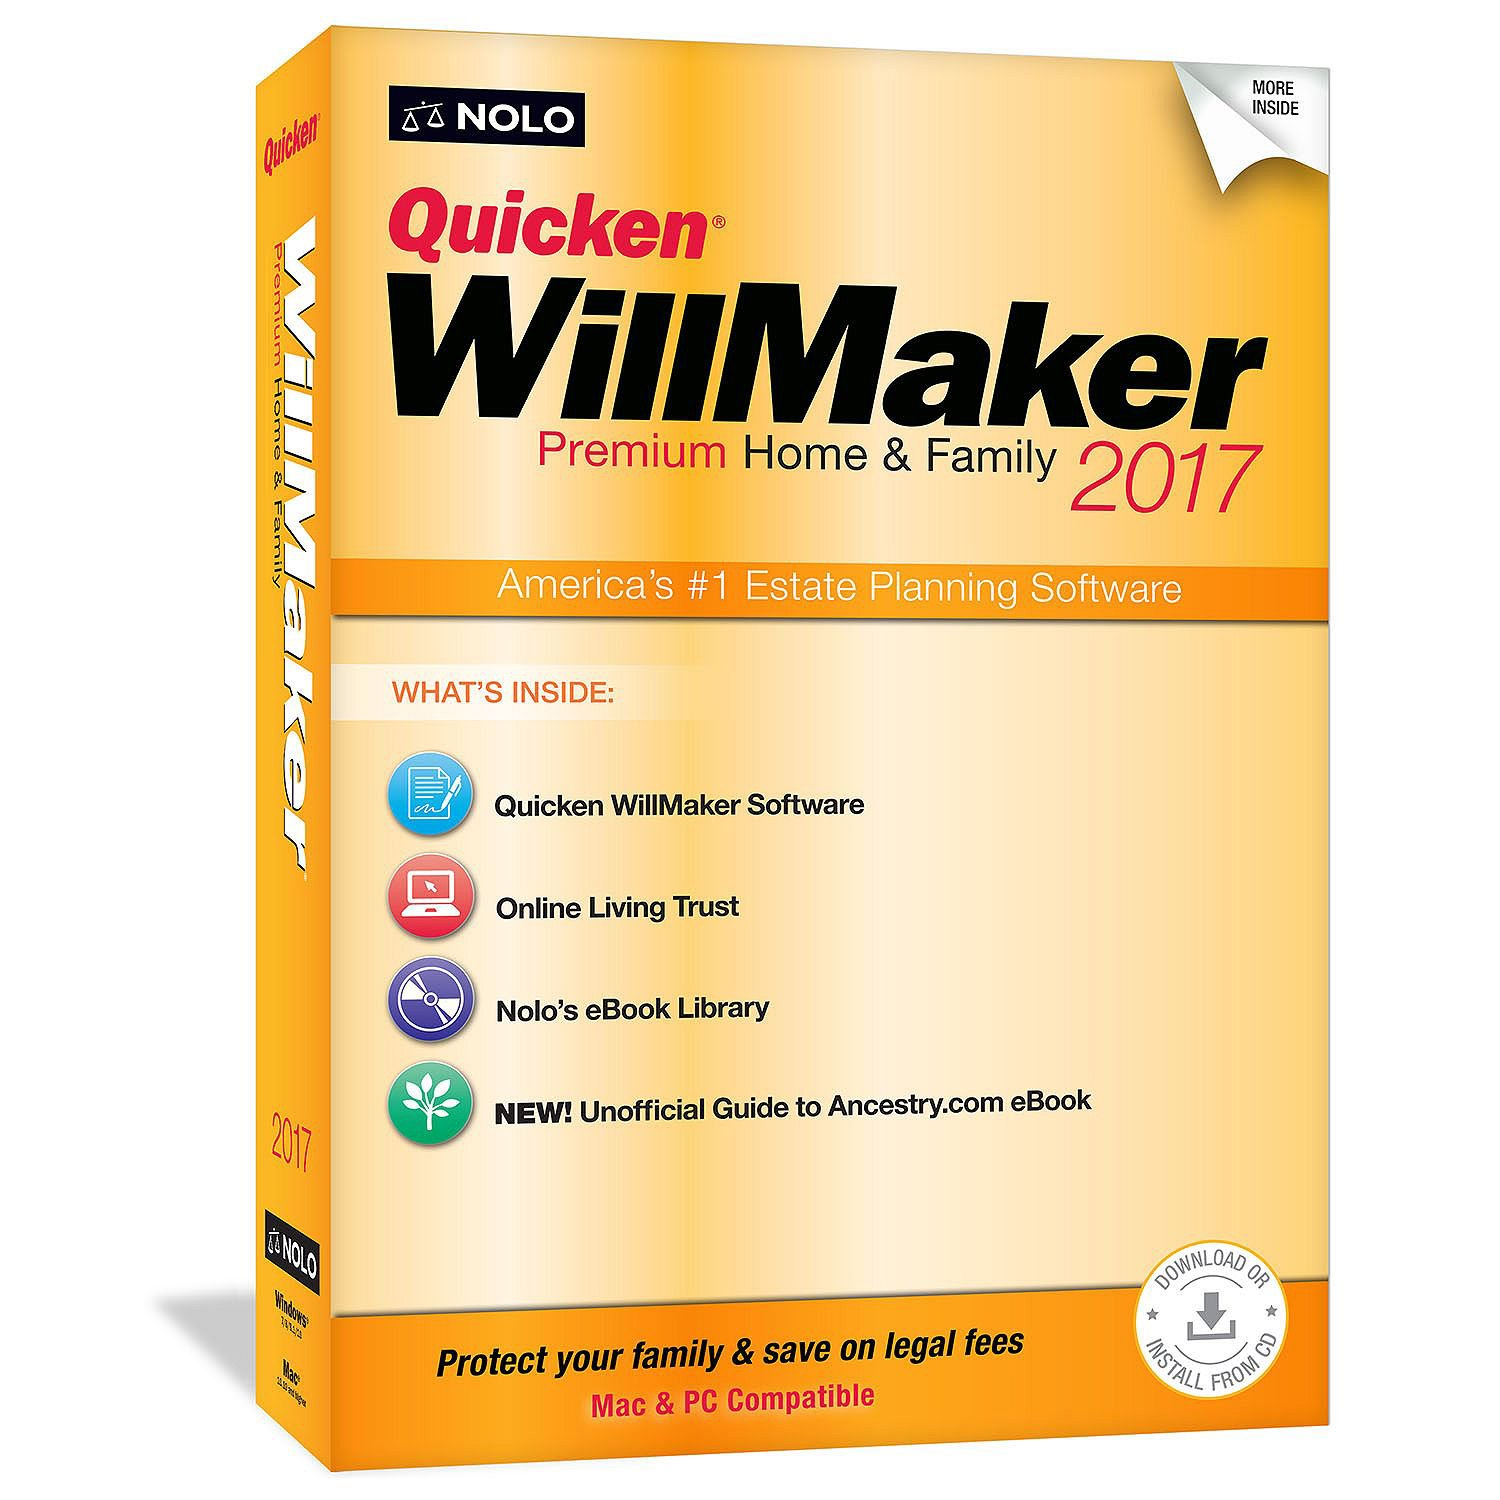 Quicken WillMaker Premium Home & Family 2017 by Quicken WillMaker